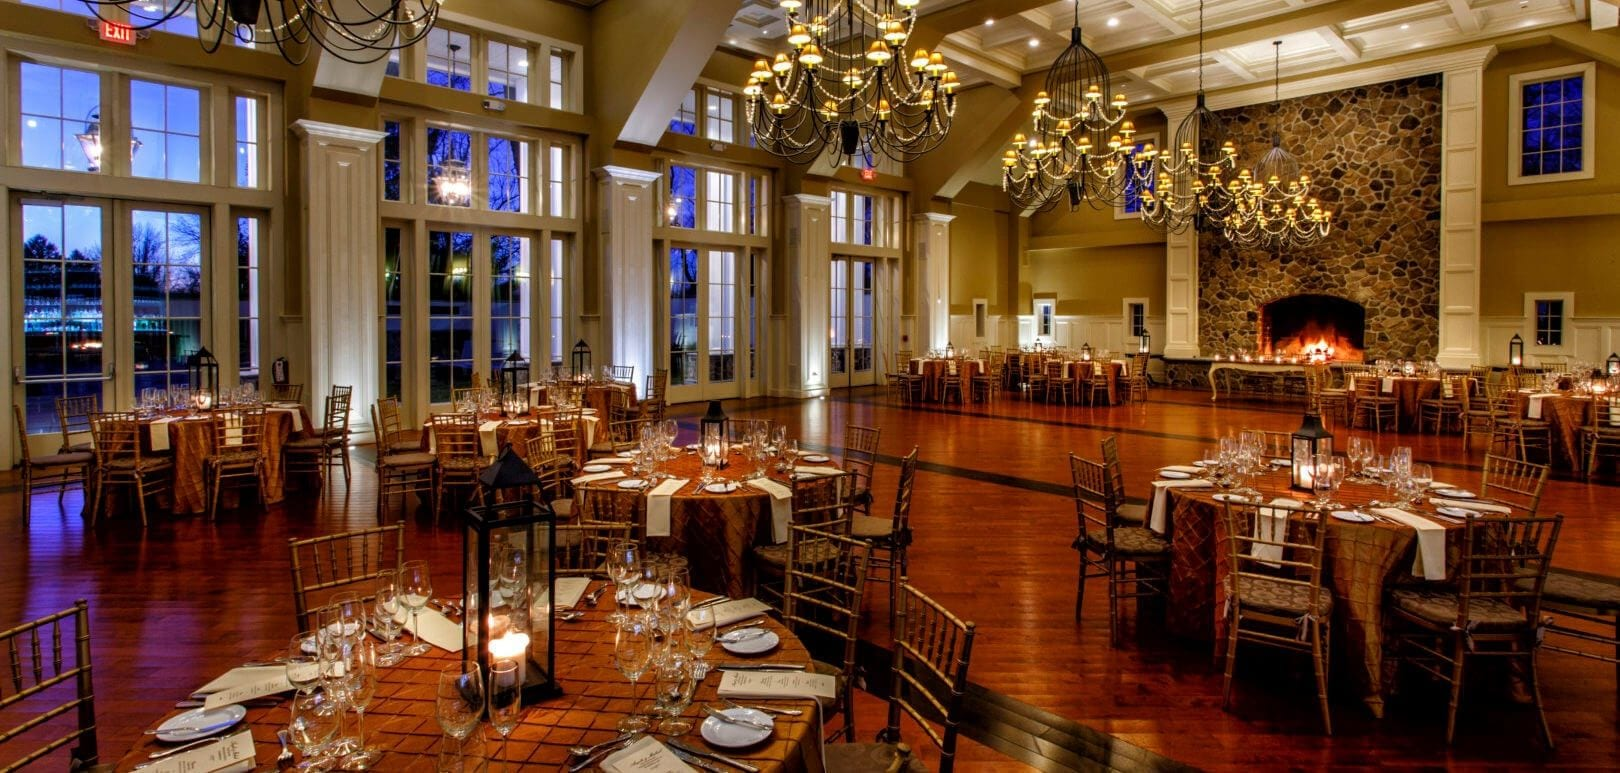 The Best New Jersey Wedding Venues - Best of NJ